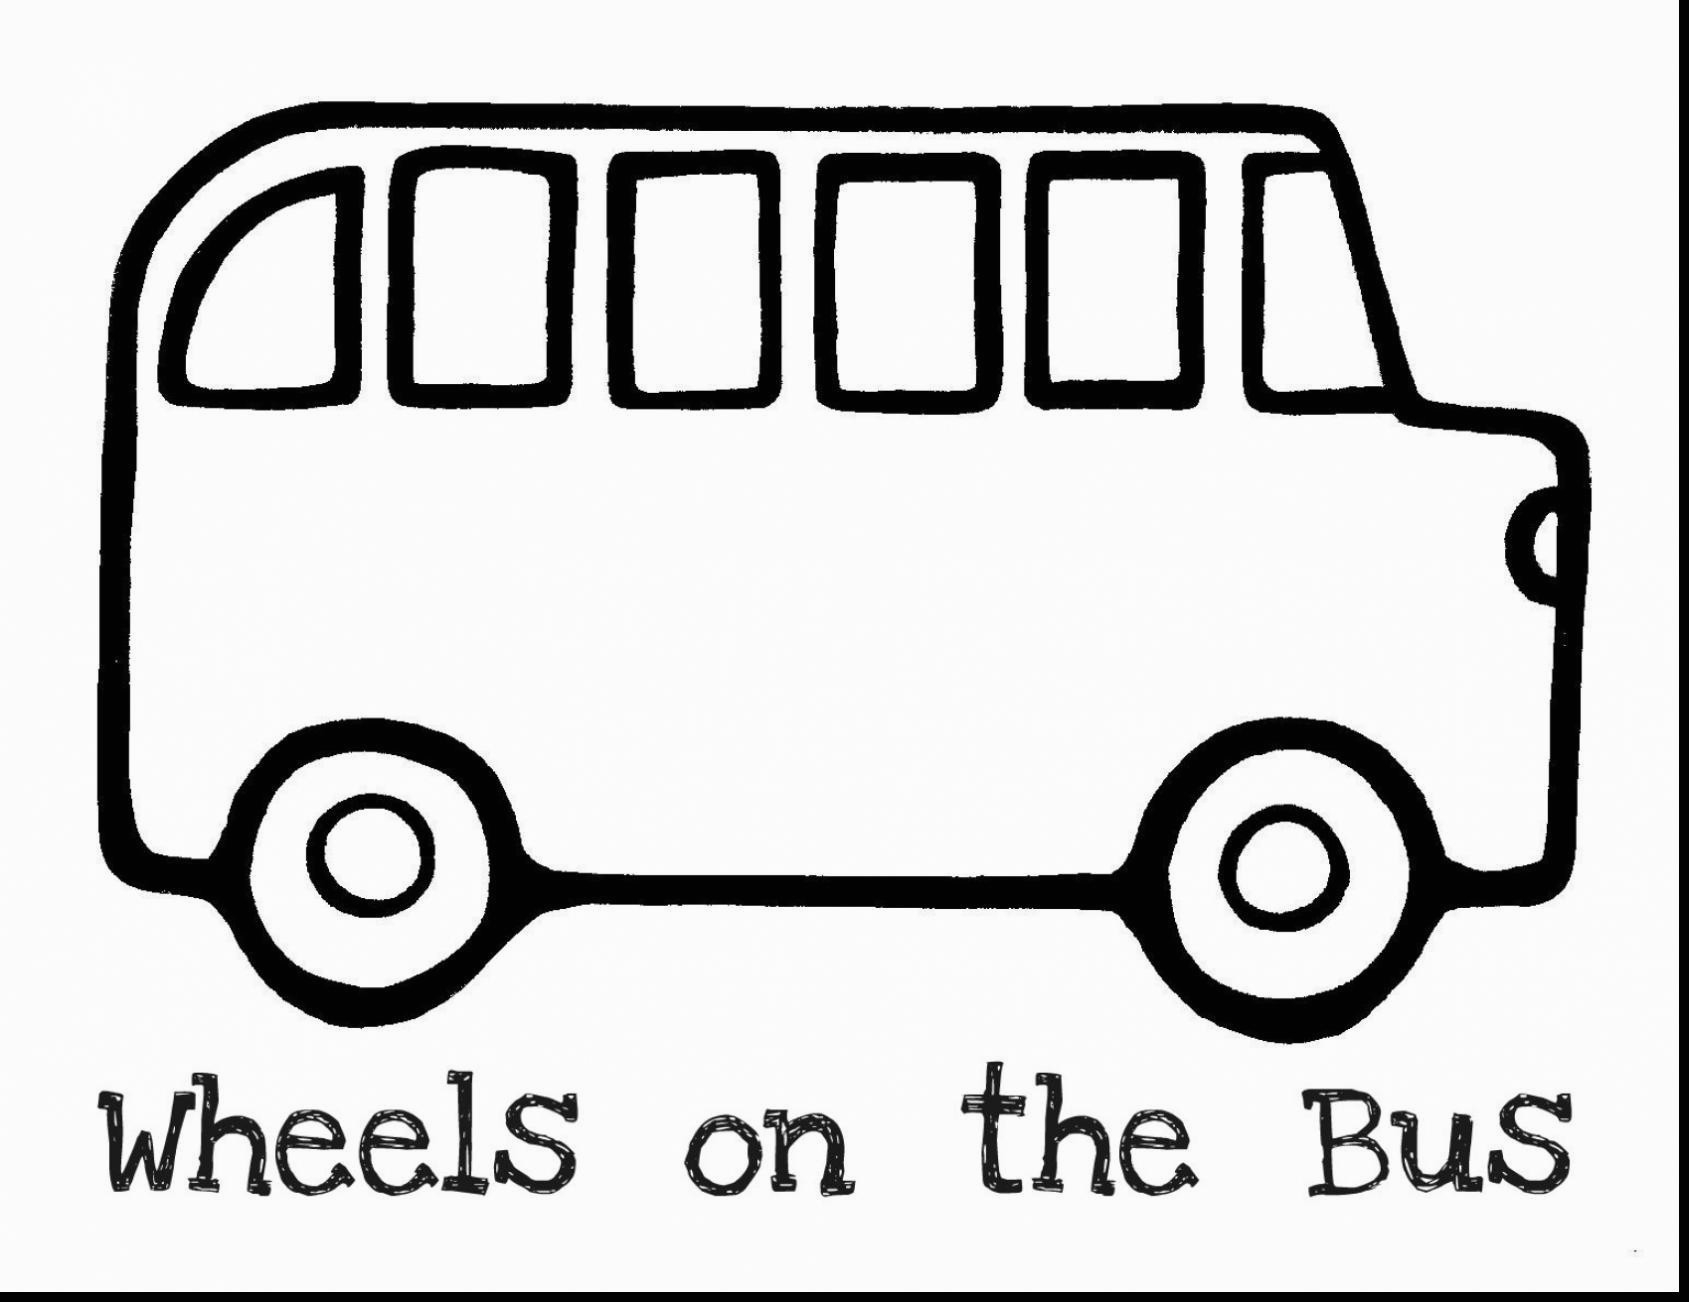 School Bus Coloring Page Cosy School Bus Coloring Page To Print New Book Pages Printable